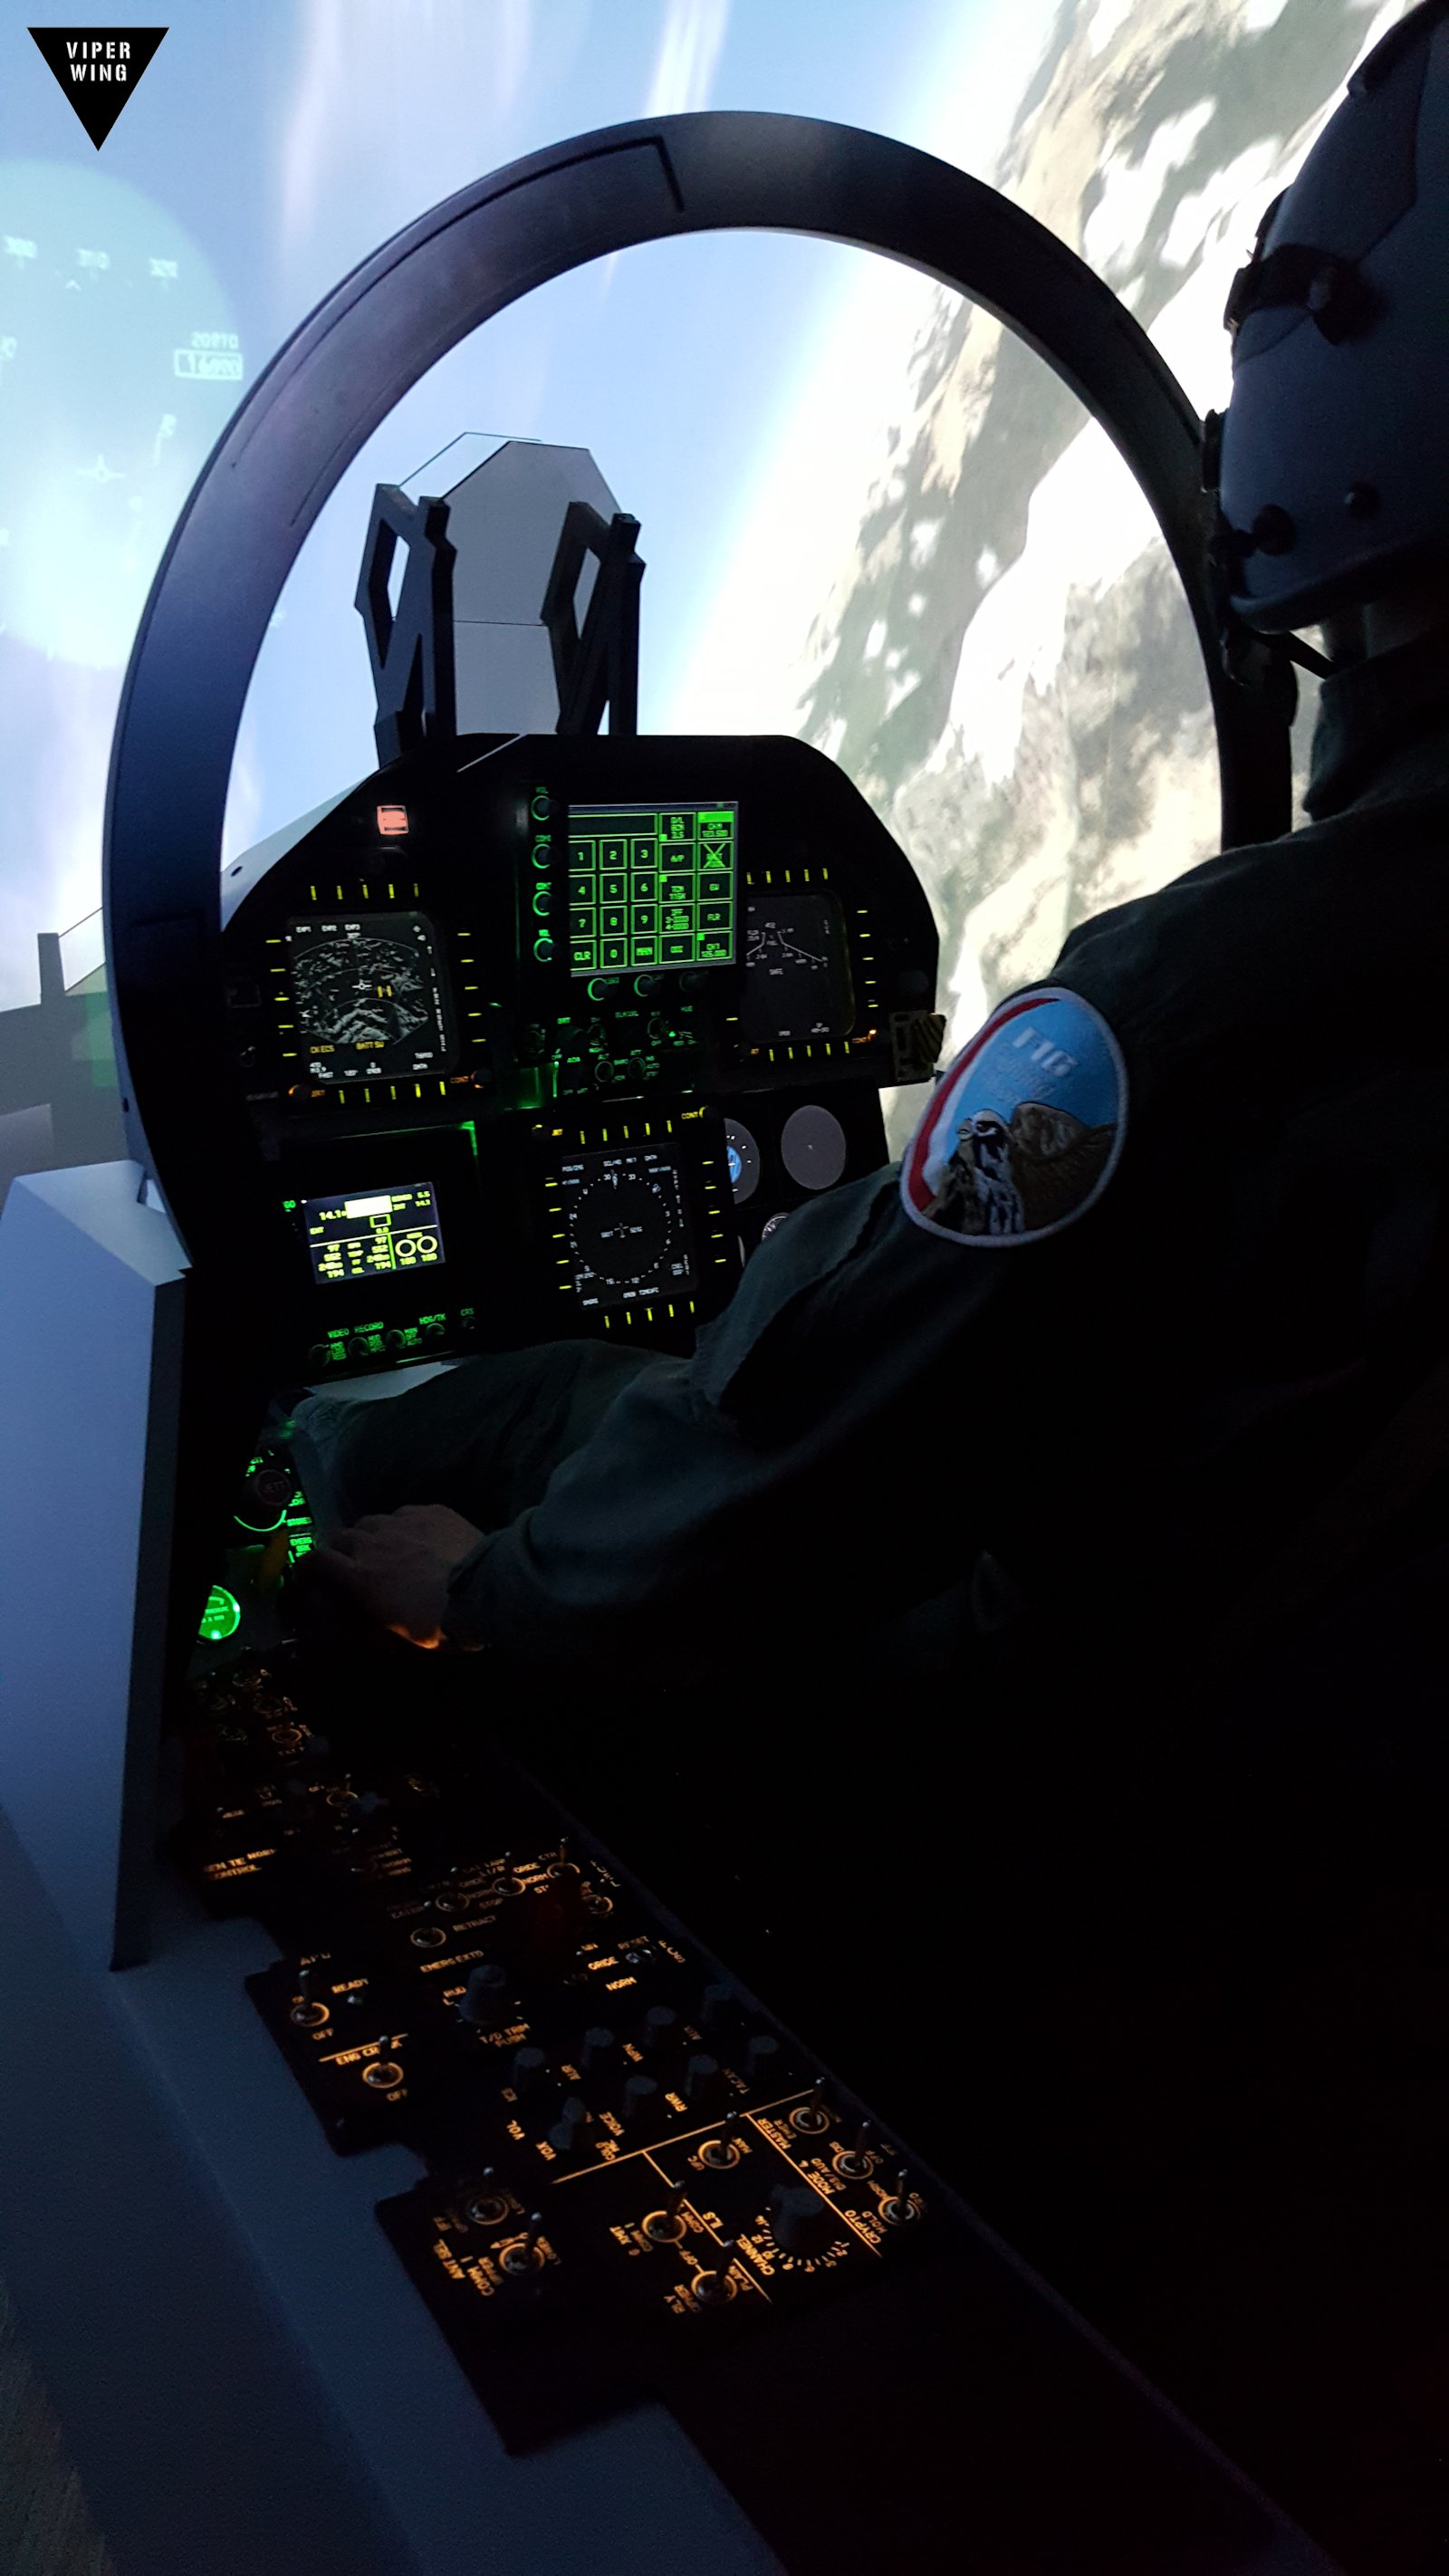 Flights F 18 F A 18 Simulator Fighter Jet Cockpit All Physical